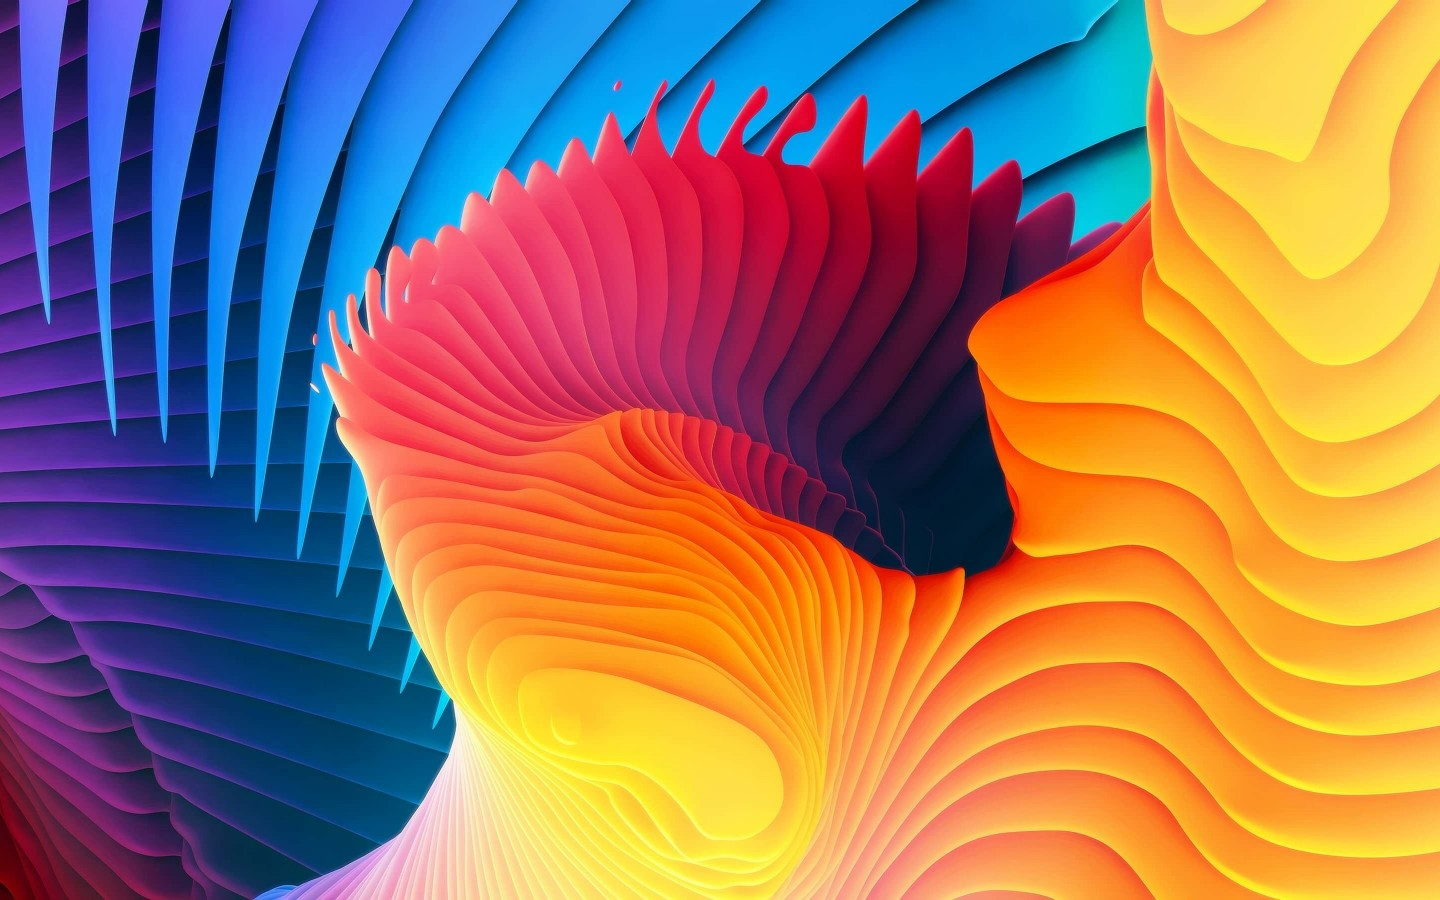 3D Colorful Spiral Wallpaper for Desktop 1440x900